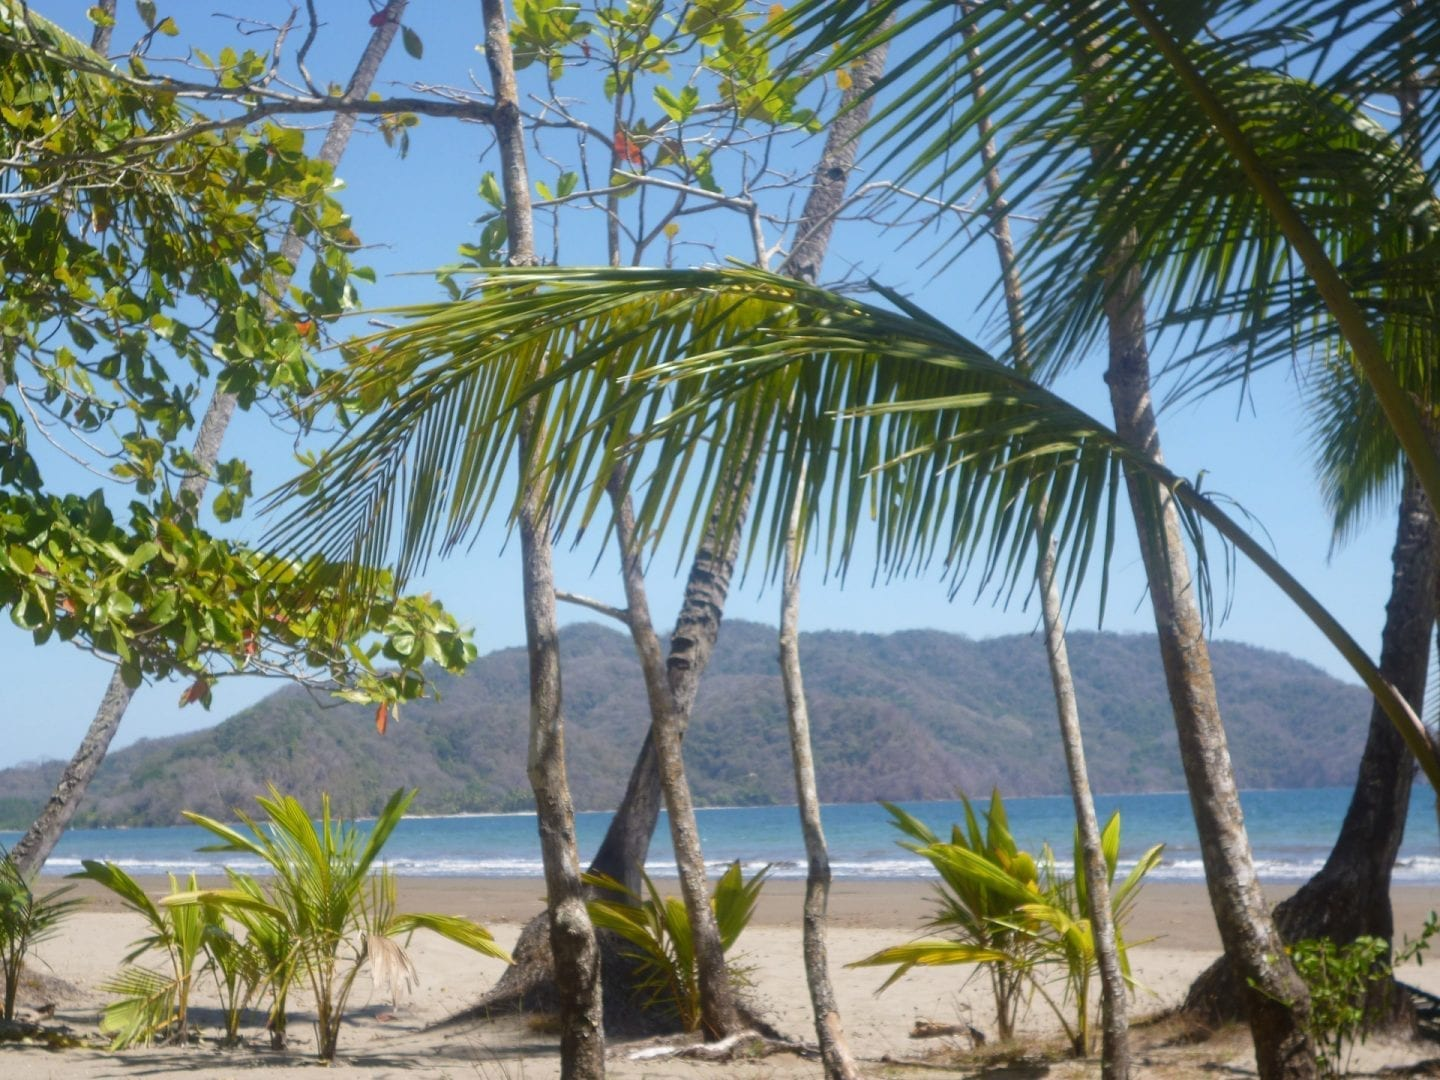 costa-rican-beach-1362351470vLk